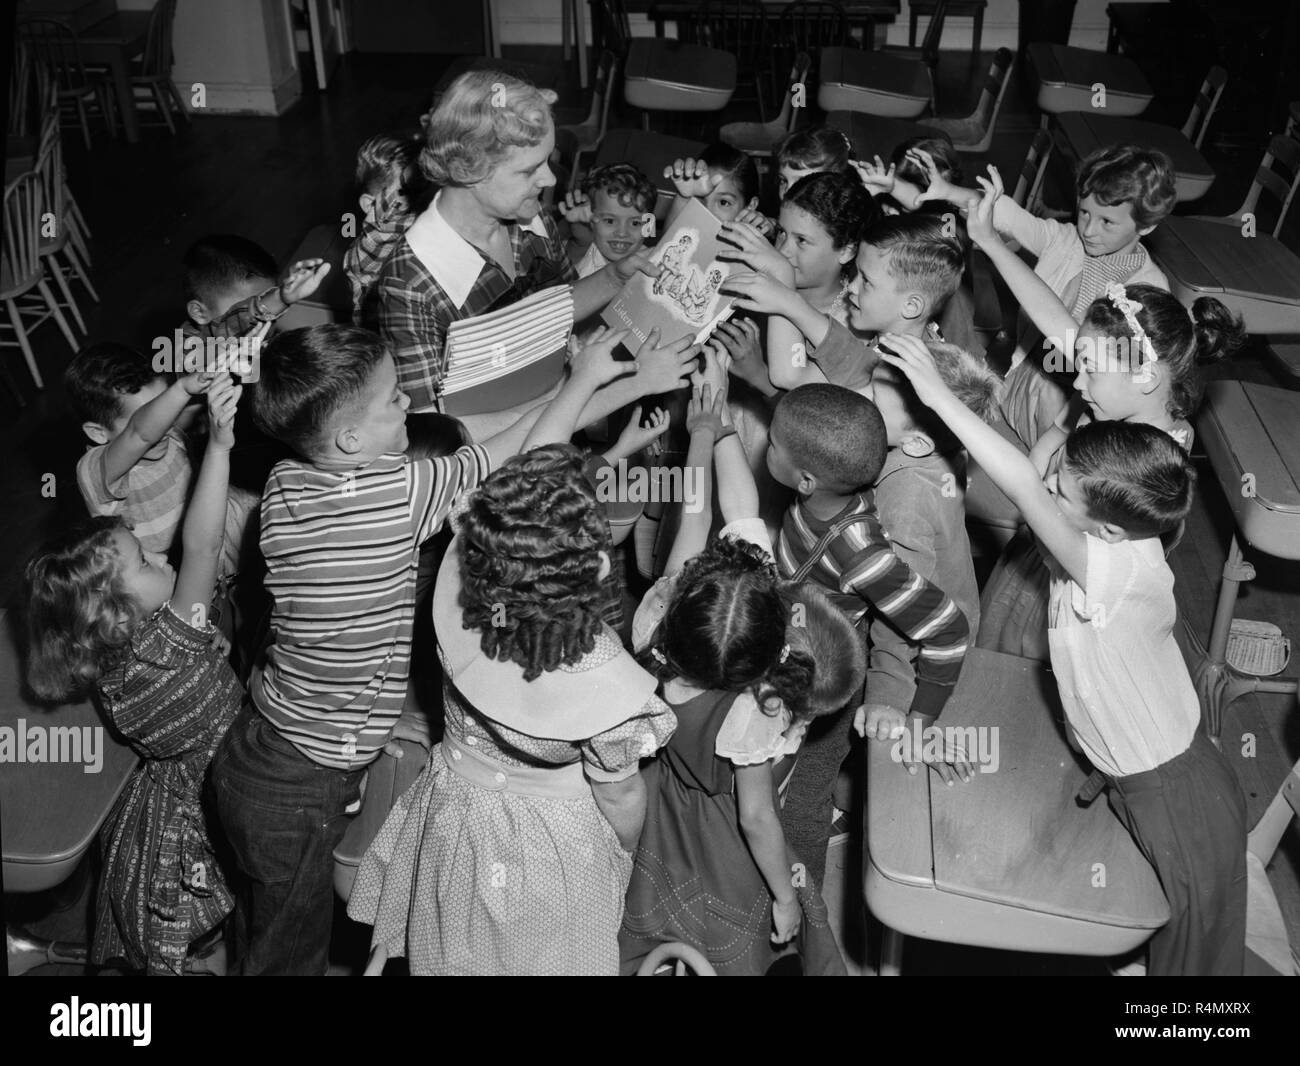 School children reach out for a book from a teacher on the first day of school, ca. 1956. - Stock Image